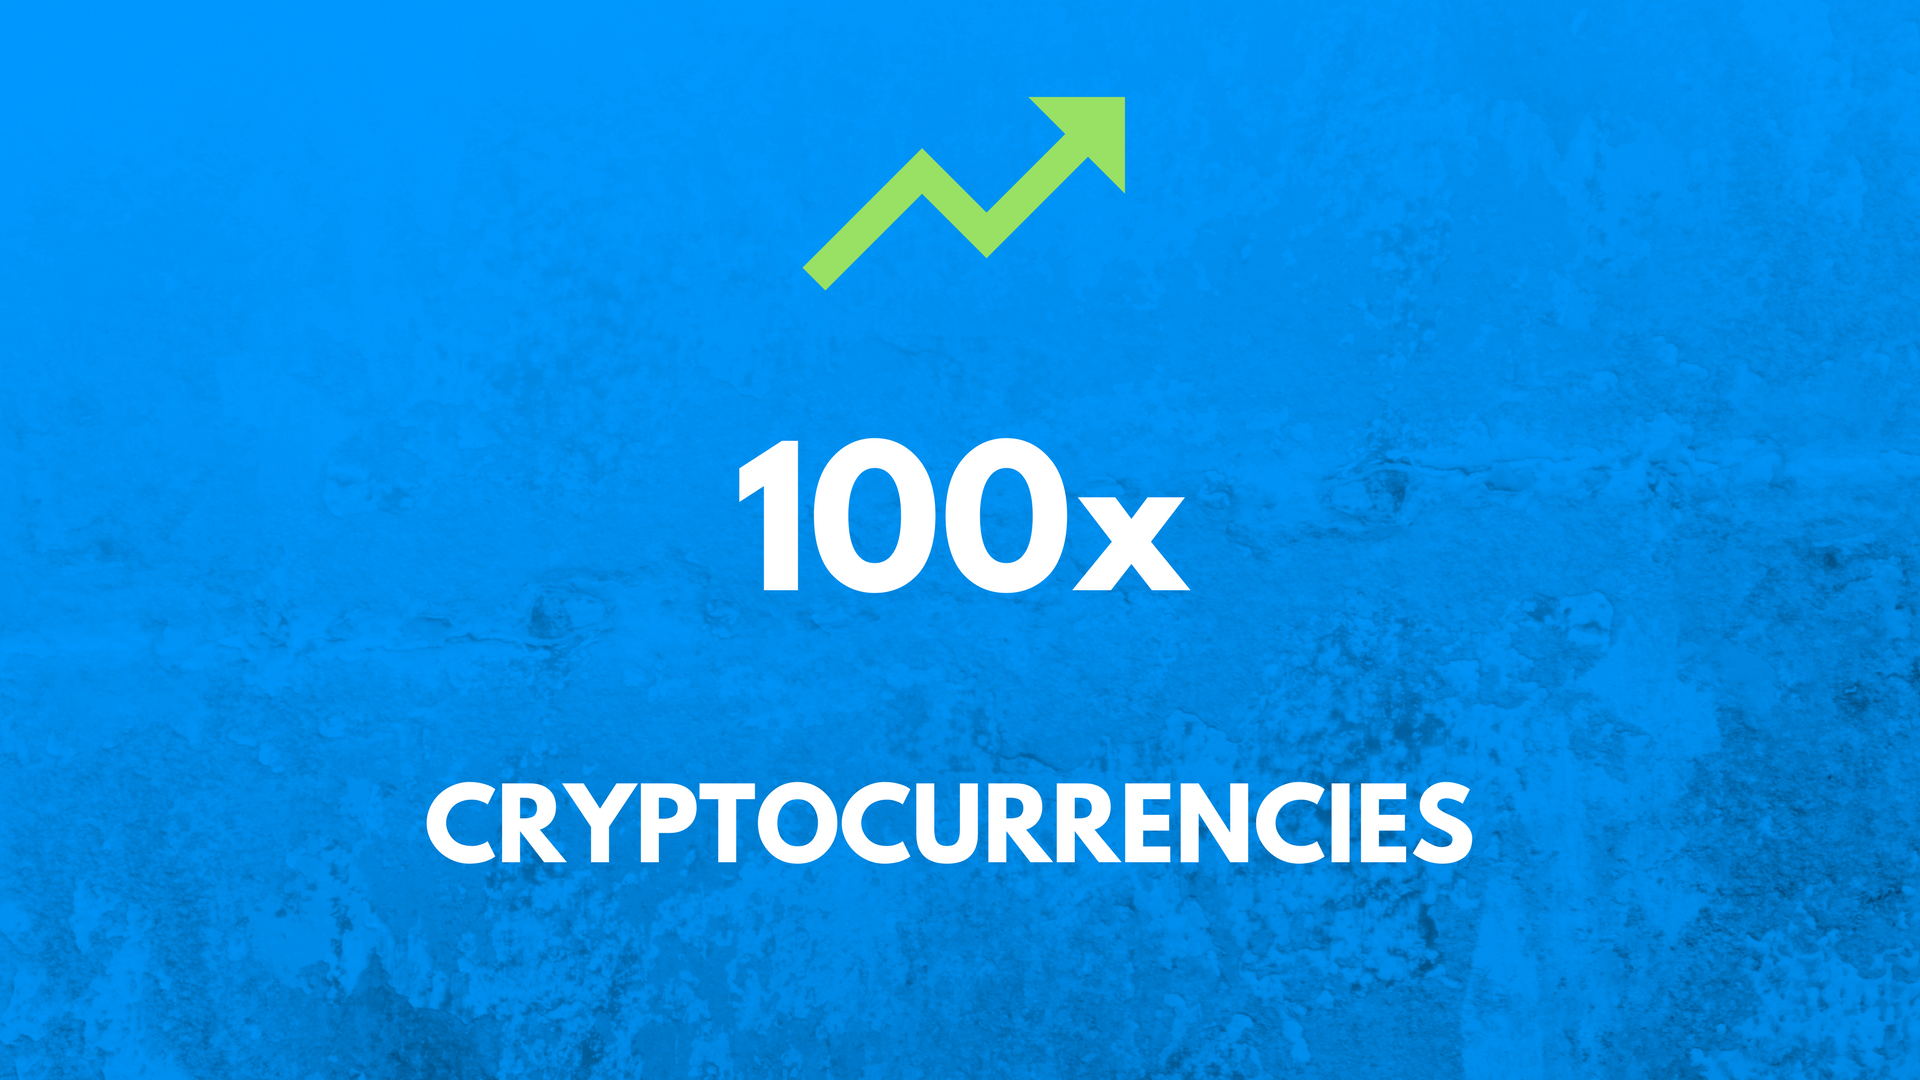 6 Low Market Cap Cryptocurrencies That Have the Potential to 100x